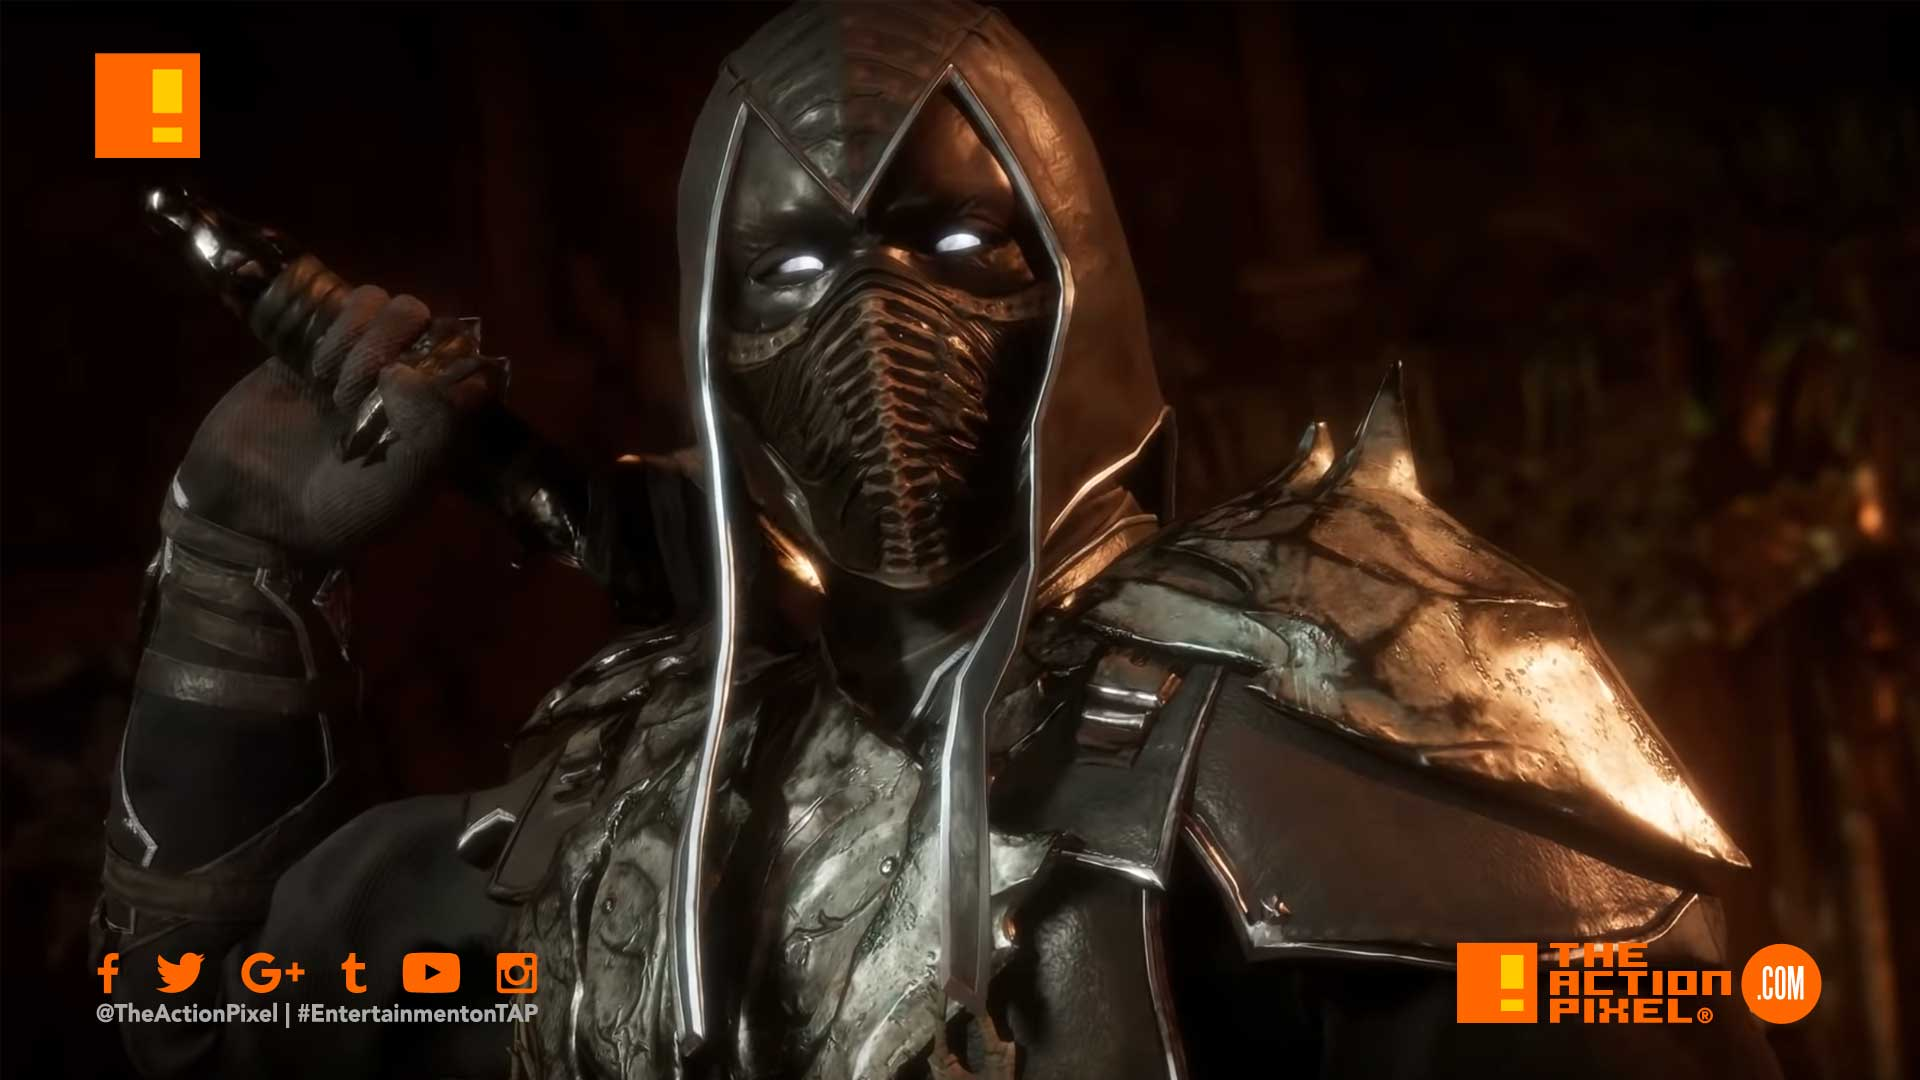 bo staff, jade, mortal kombat, netherrealm studios, mk11, mortal kombat 11, reveal character trailer, trailer,reveal trailer, the action pixel, entertainment on tap,mk 11, scorpion, raiden, the game awards 2018, mortal kombat, mortal kombat 11, the action pixel, entertainment on tap,trailer, mk 11 trailer, mortal kombat 11 trailer,closed beta, featured, beta, official trailer,